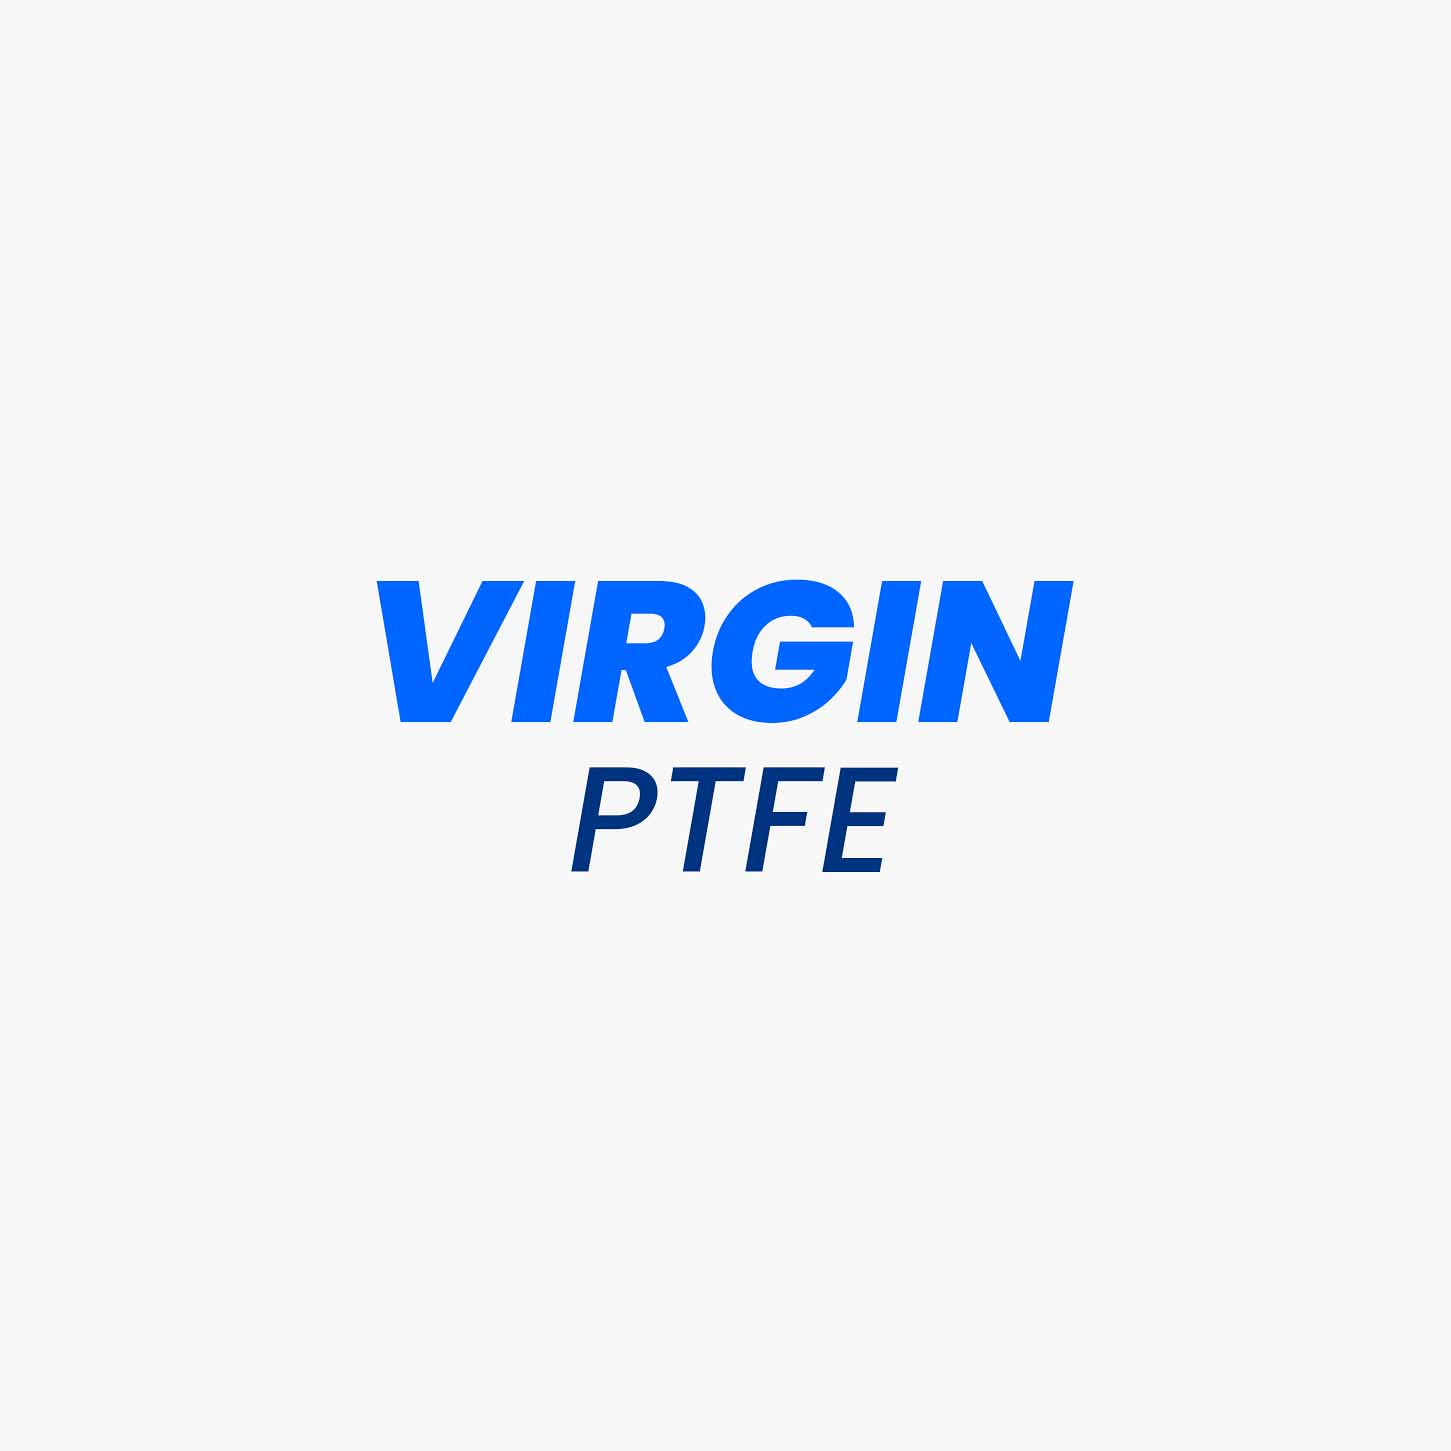 Virgin PTFE grade material is created from pure resin of PTFE without adding any other material. It is one of the most inert materials, that is used in various industrial applications. Because of the chemical structure of the PTFE polymer, the fluorine atoms form a homogenous sheath around carbon atoms, thereby aiding the polymer with chemical resistance and stability. Virgin PTFE is mostly used for the components where temperature and chemical resistance is important instead of mechanical properties.